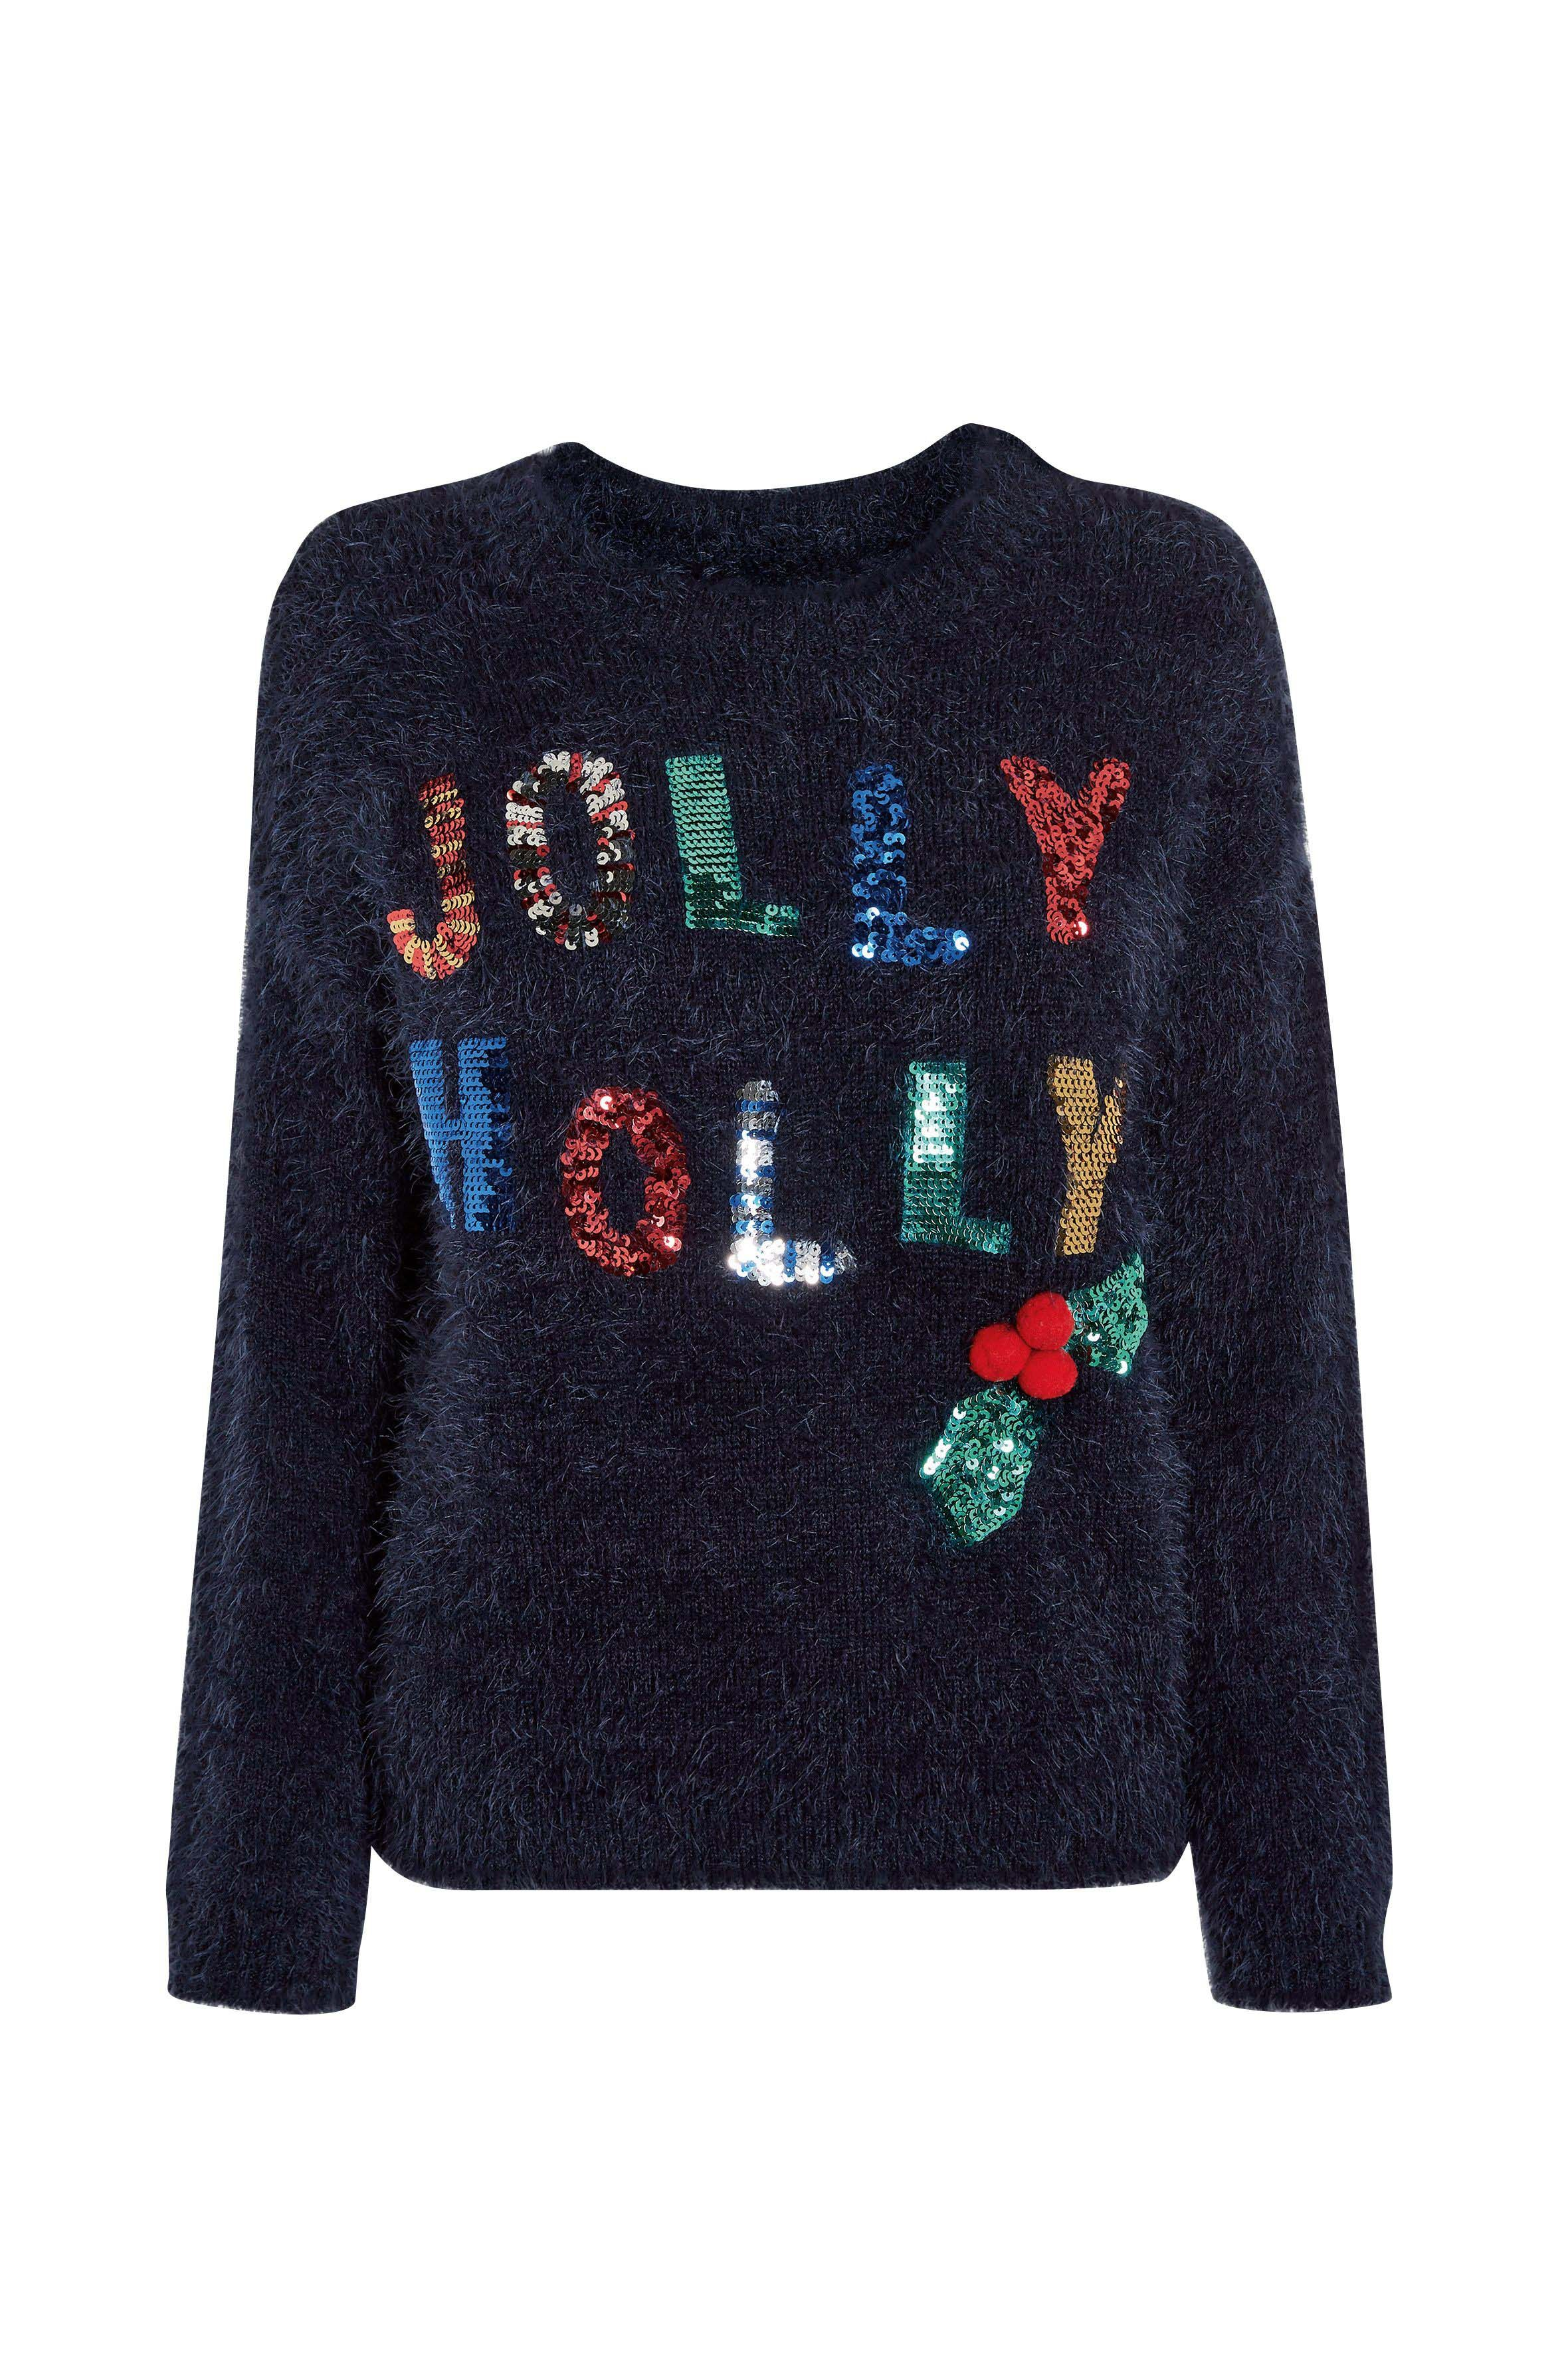 Next Christmas Jumpers.Pin On Diy